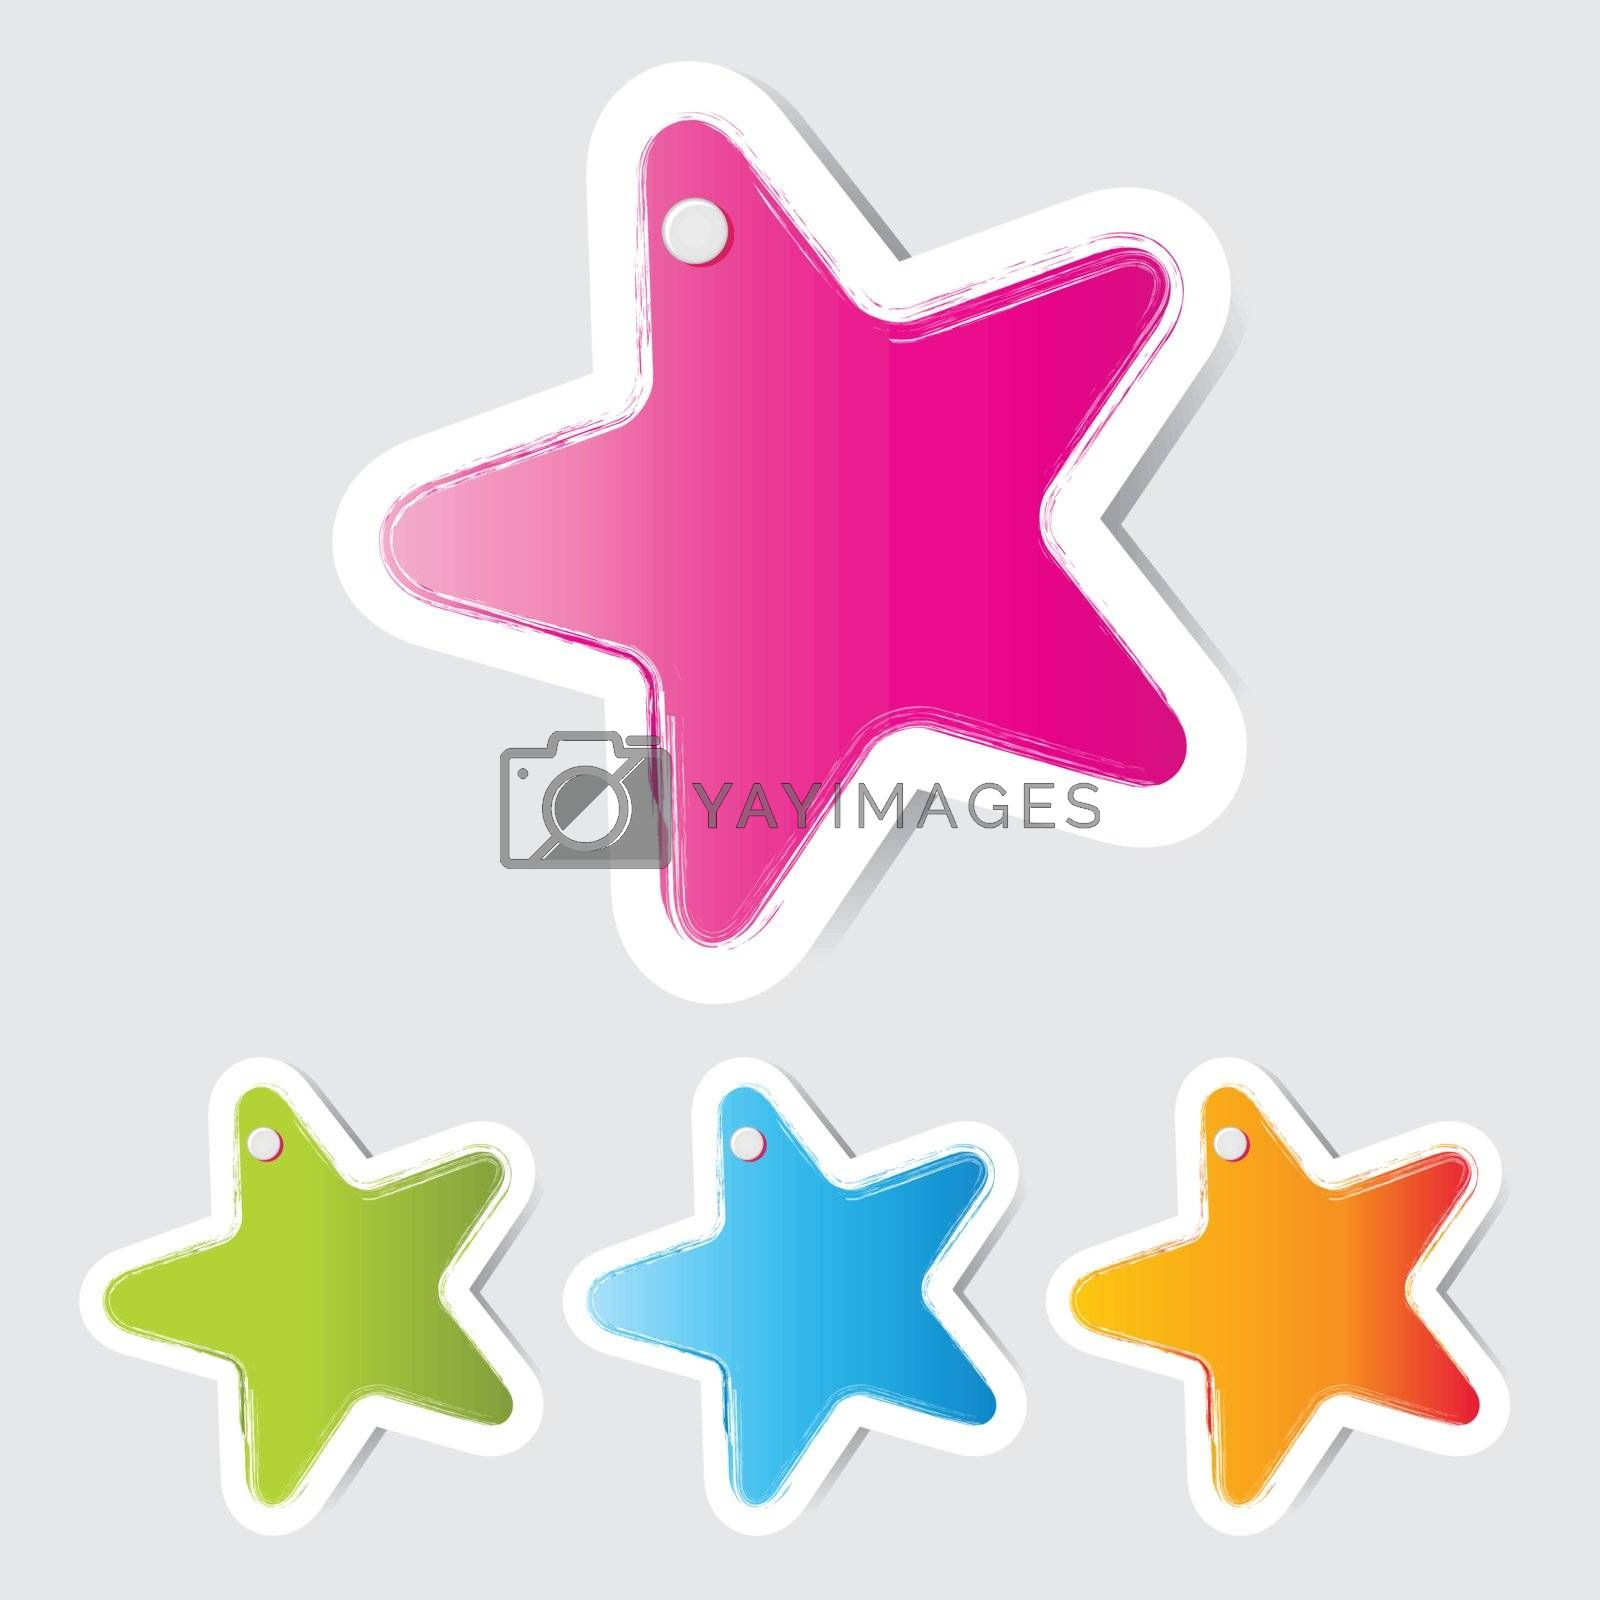 Colorful paper star with a stick pin